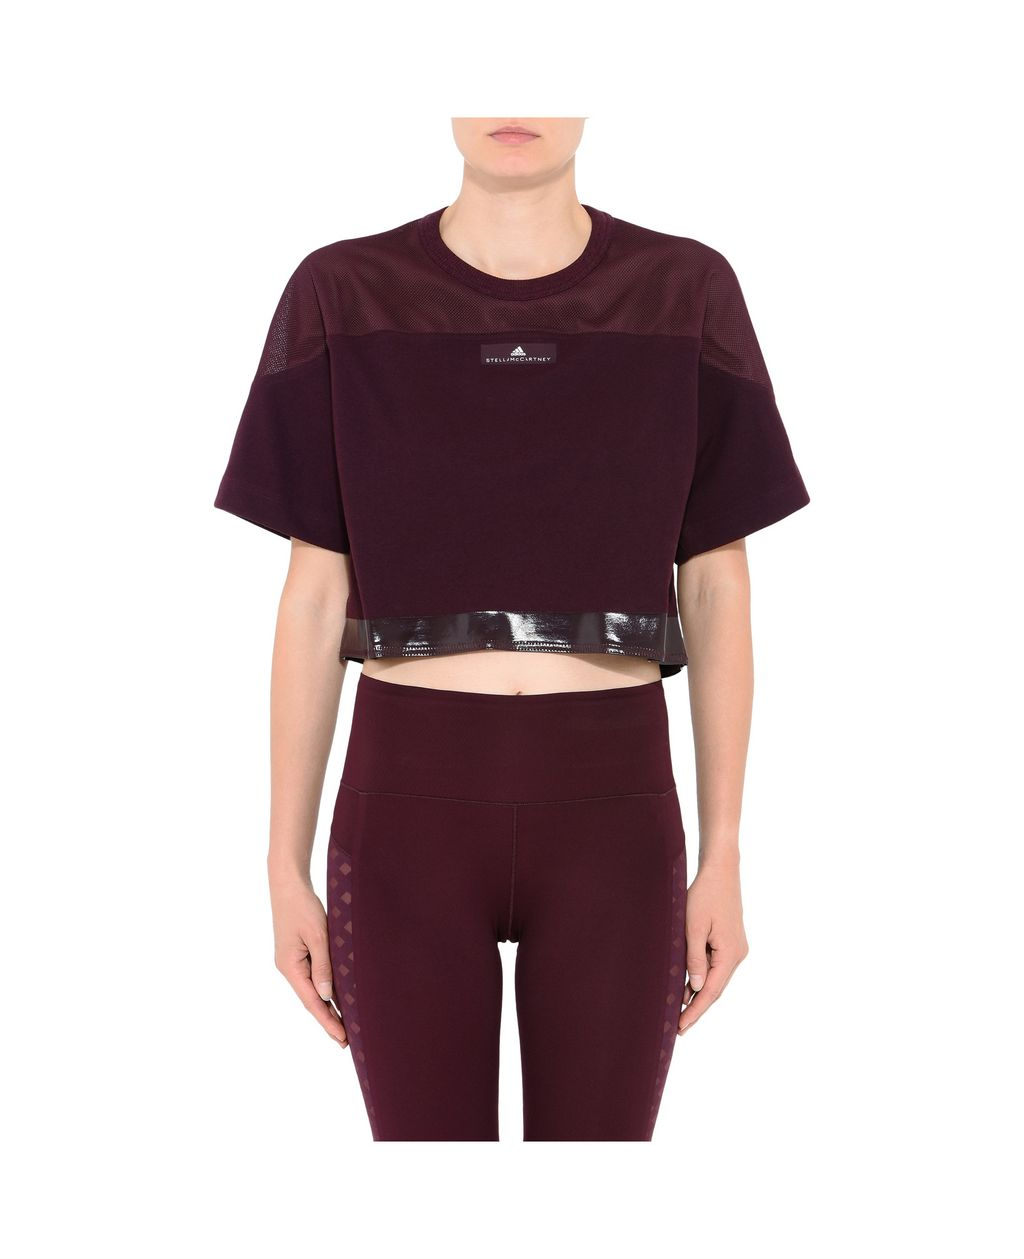 Red Essential Cropped Top - ADIDAS by STELLA McCARTNEY